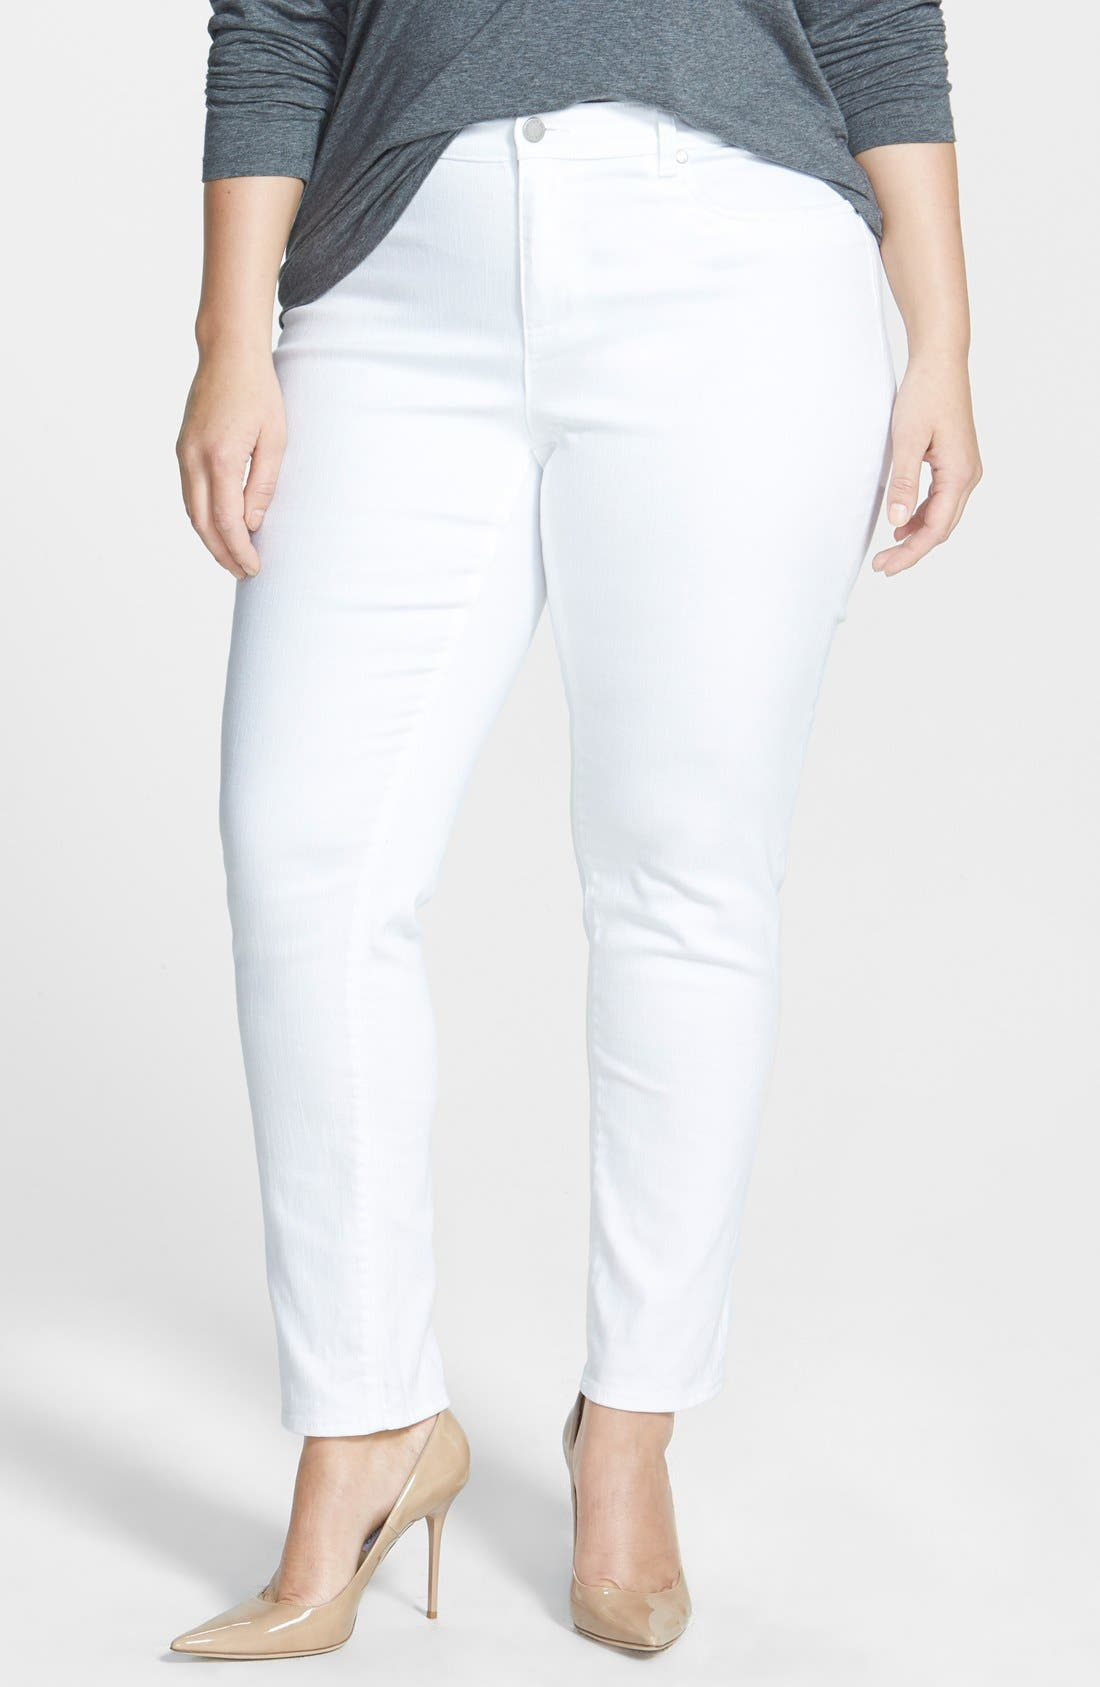 Main Image - Two by Vince Camuto Skinny Jeans (White) (Plus Size)